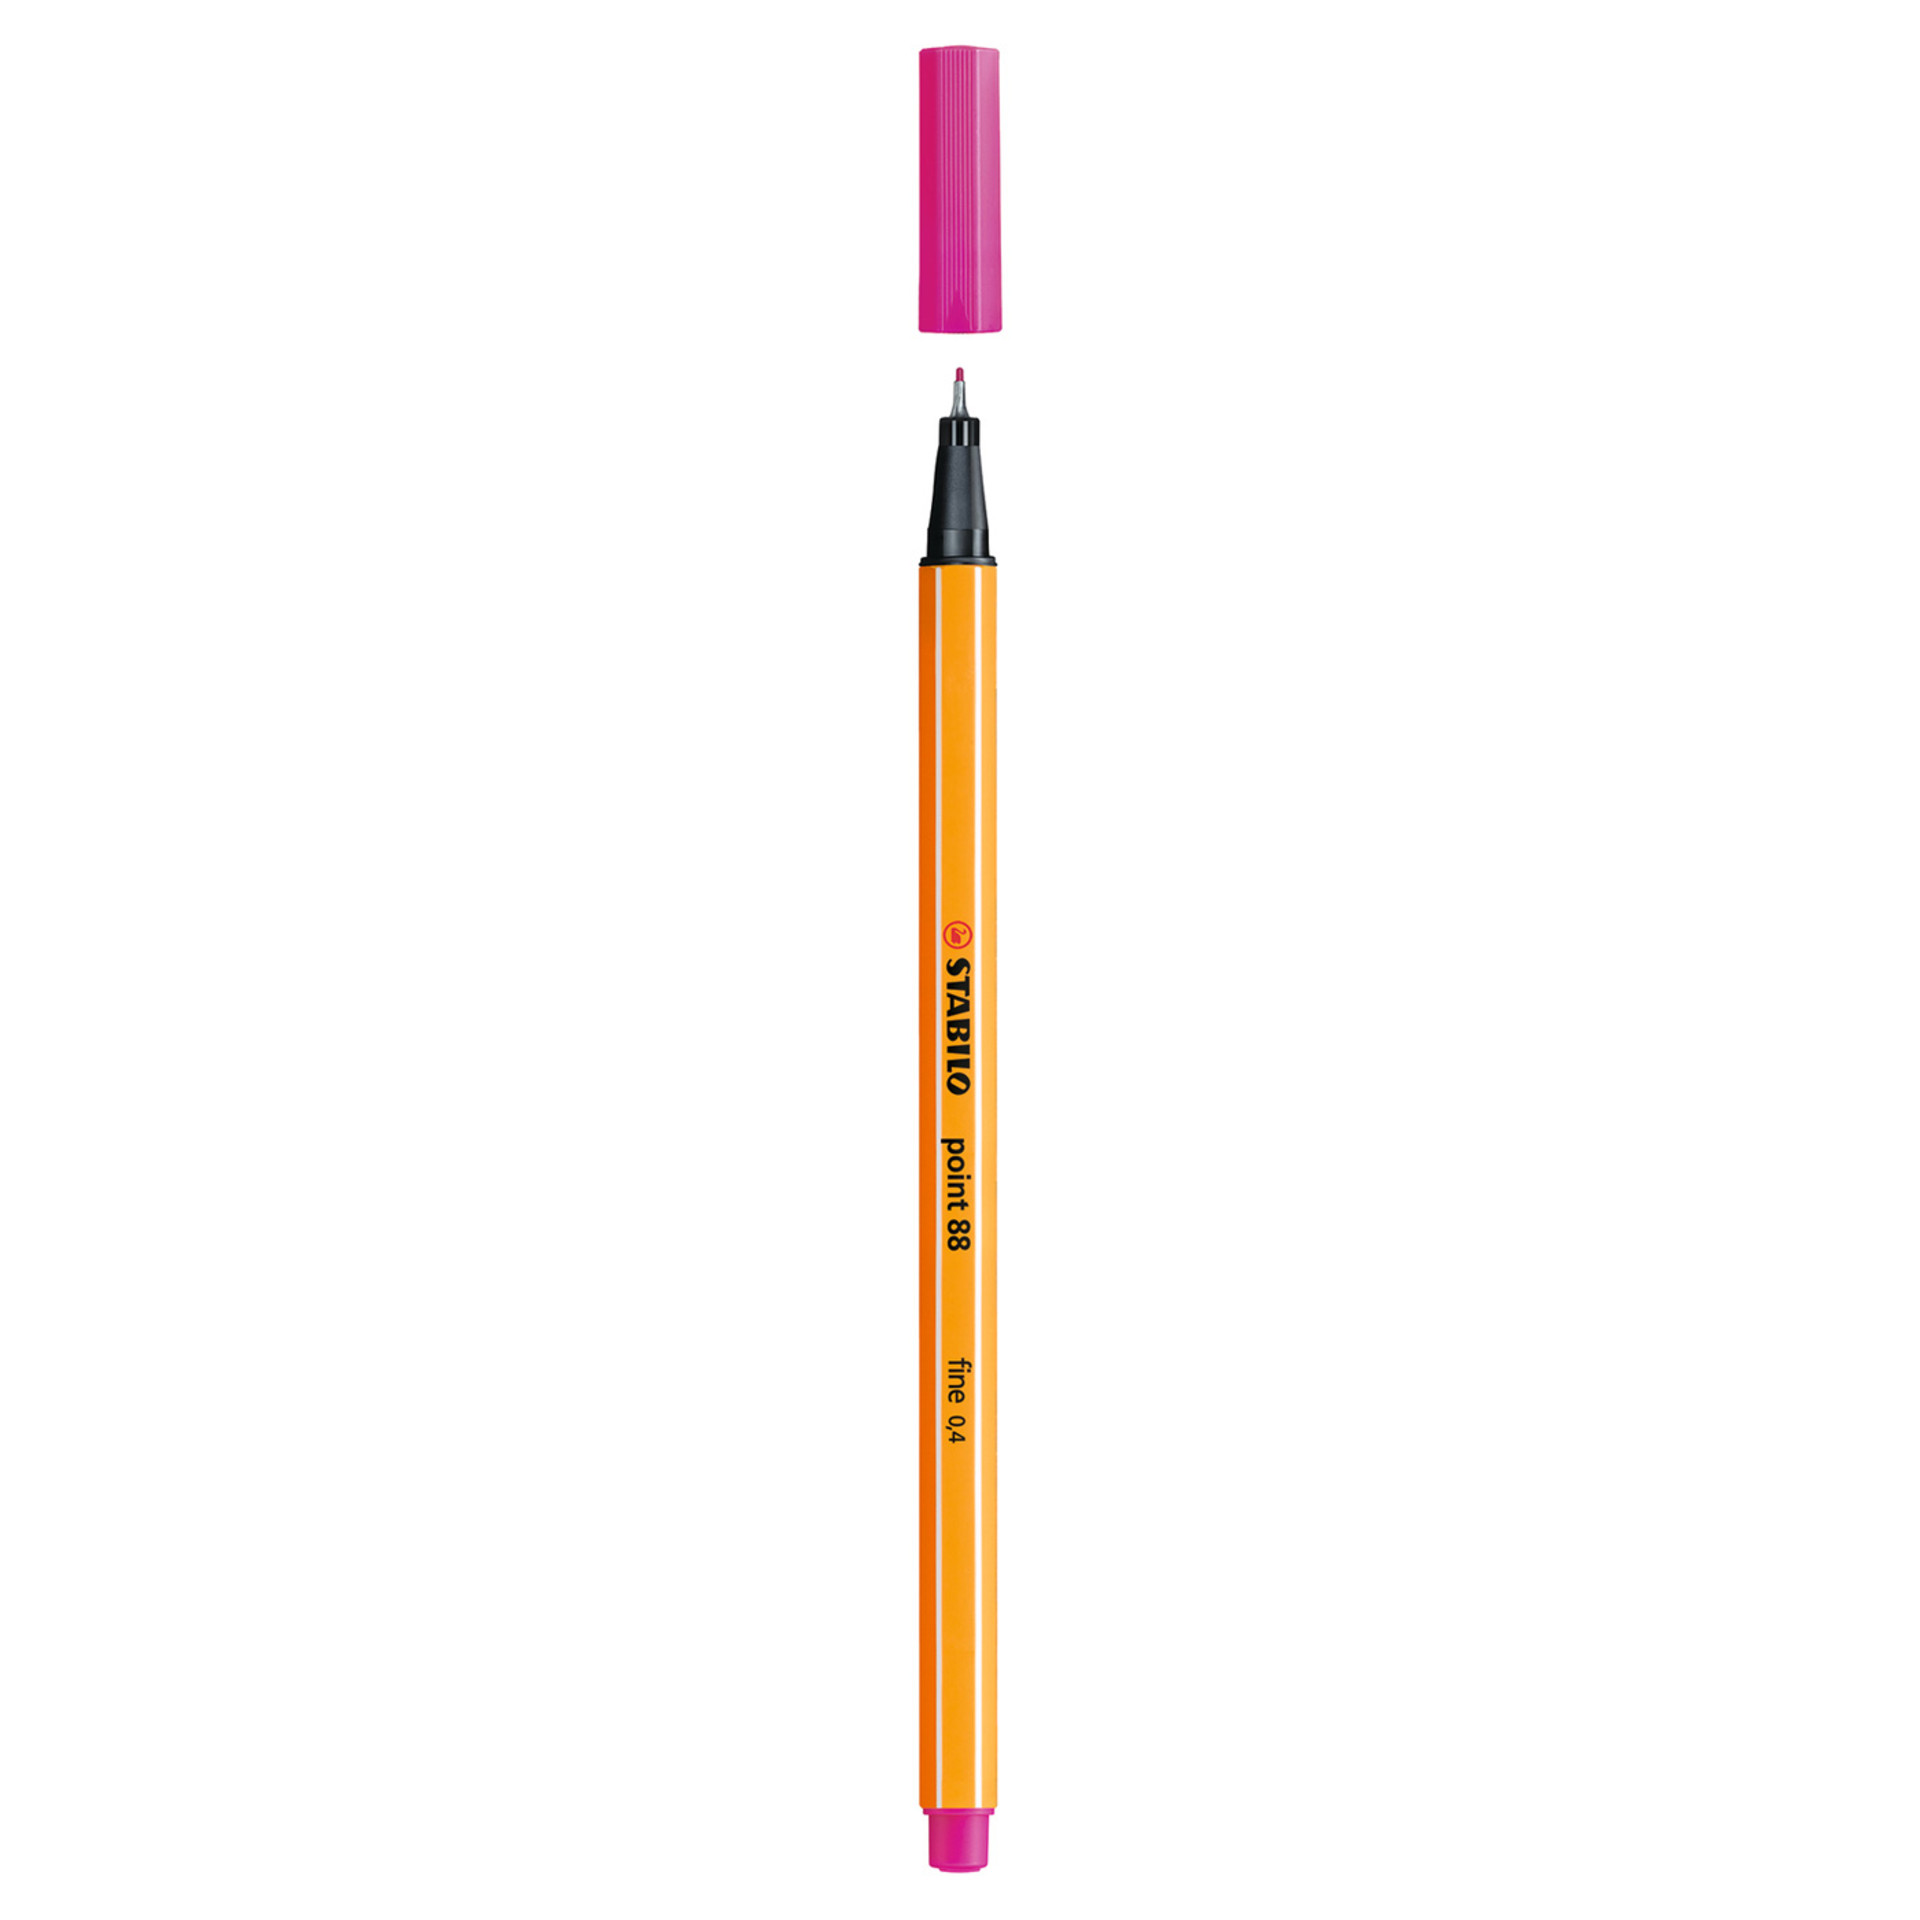 Stabilo Point 88 .4mm Fineliner Pen – Pink